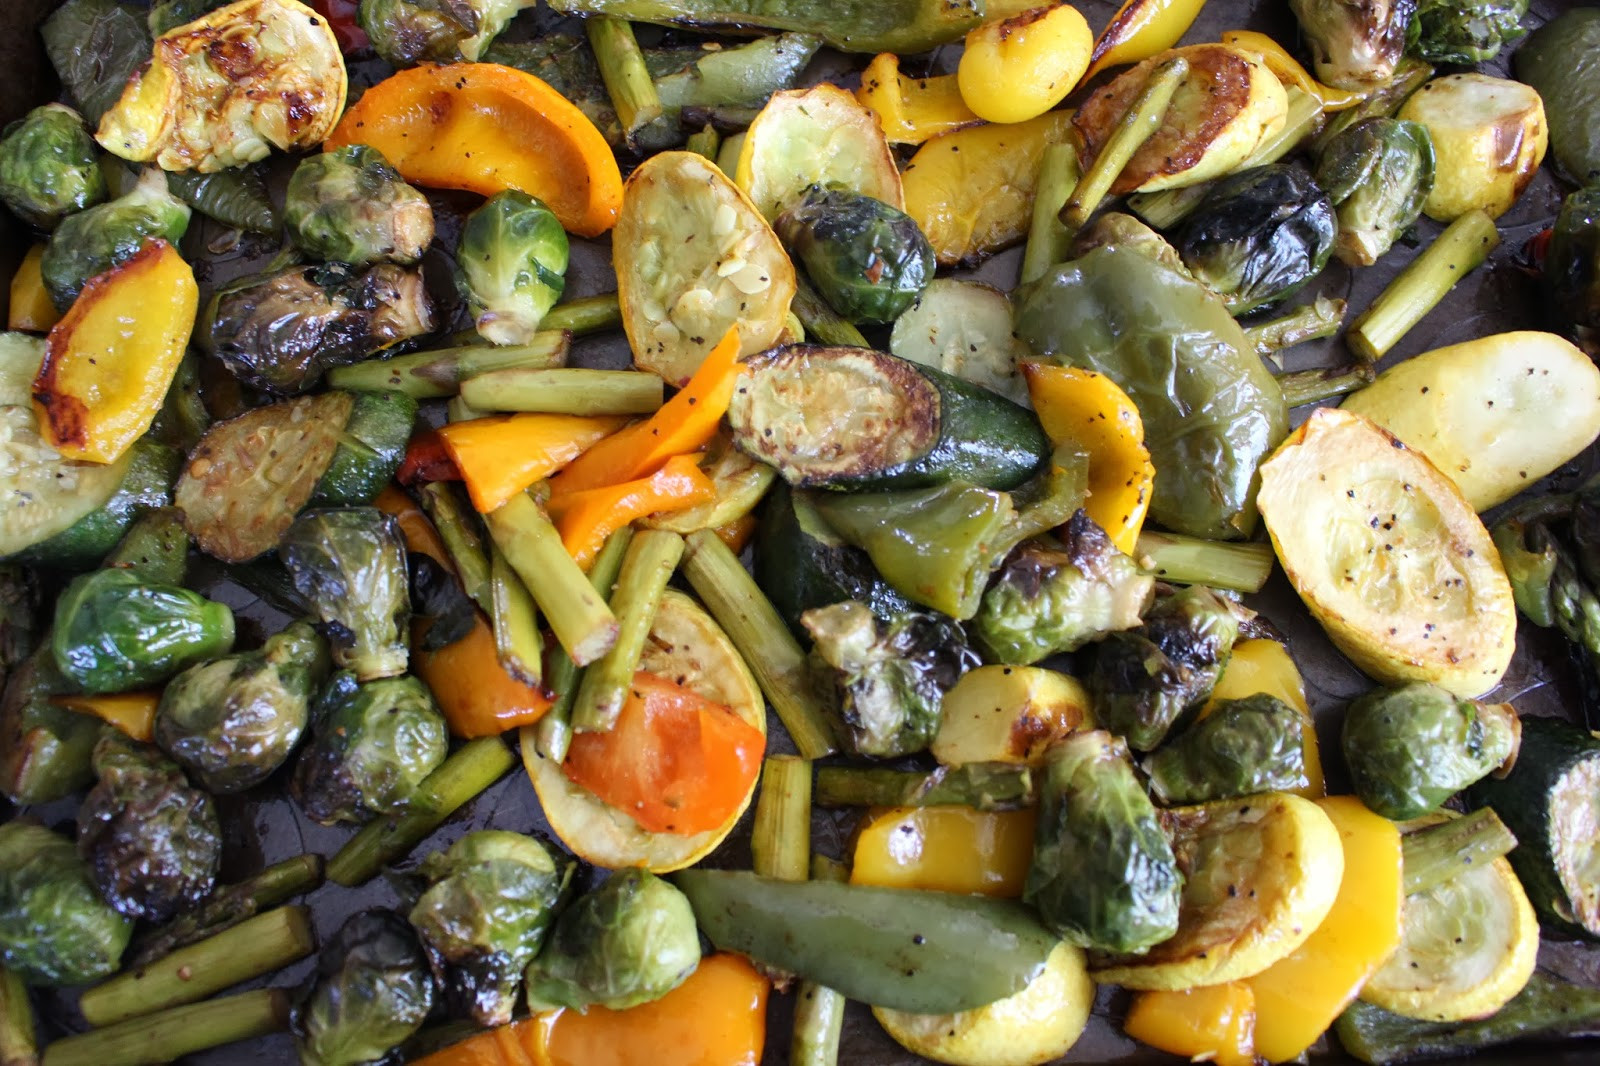 Roasted Vegetables Oven  Mami Eggroll Recipe Oven Roasted Ve ables